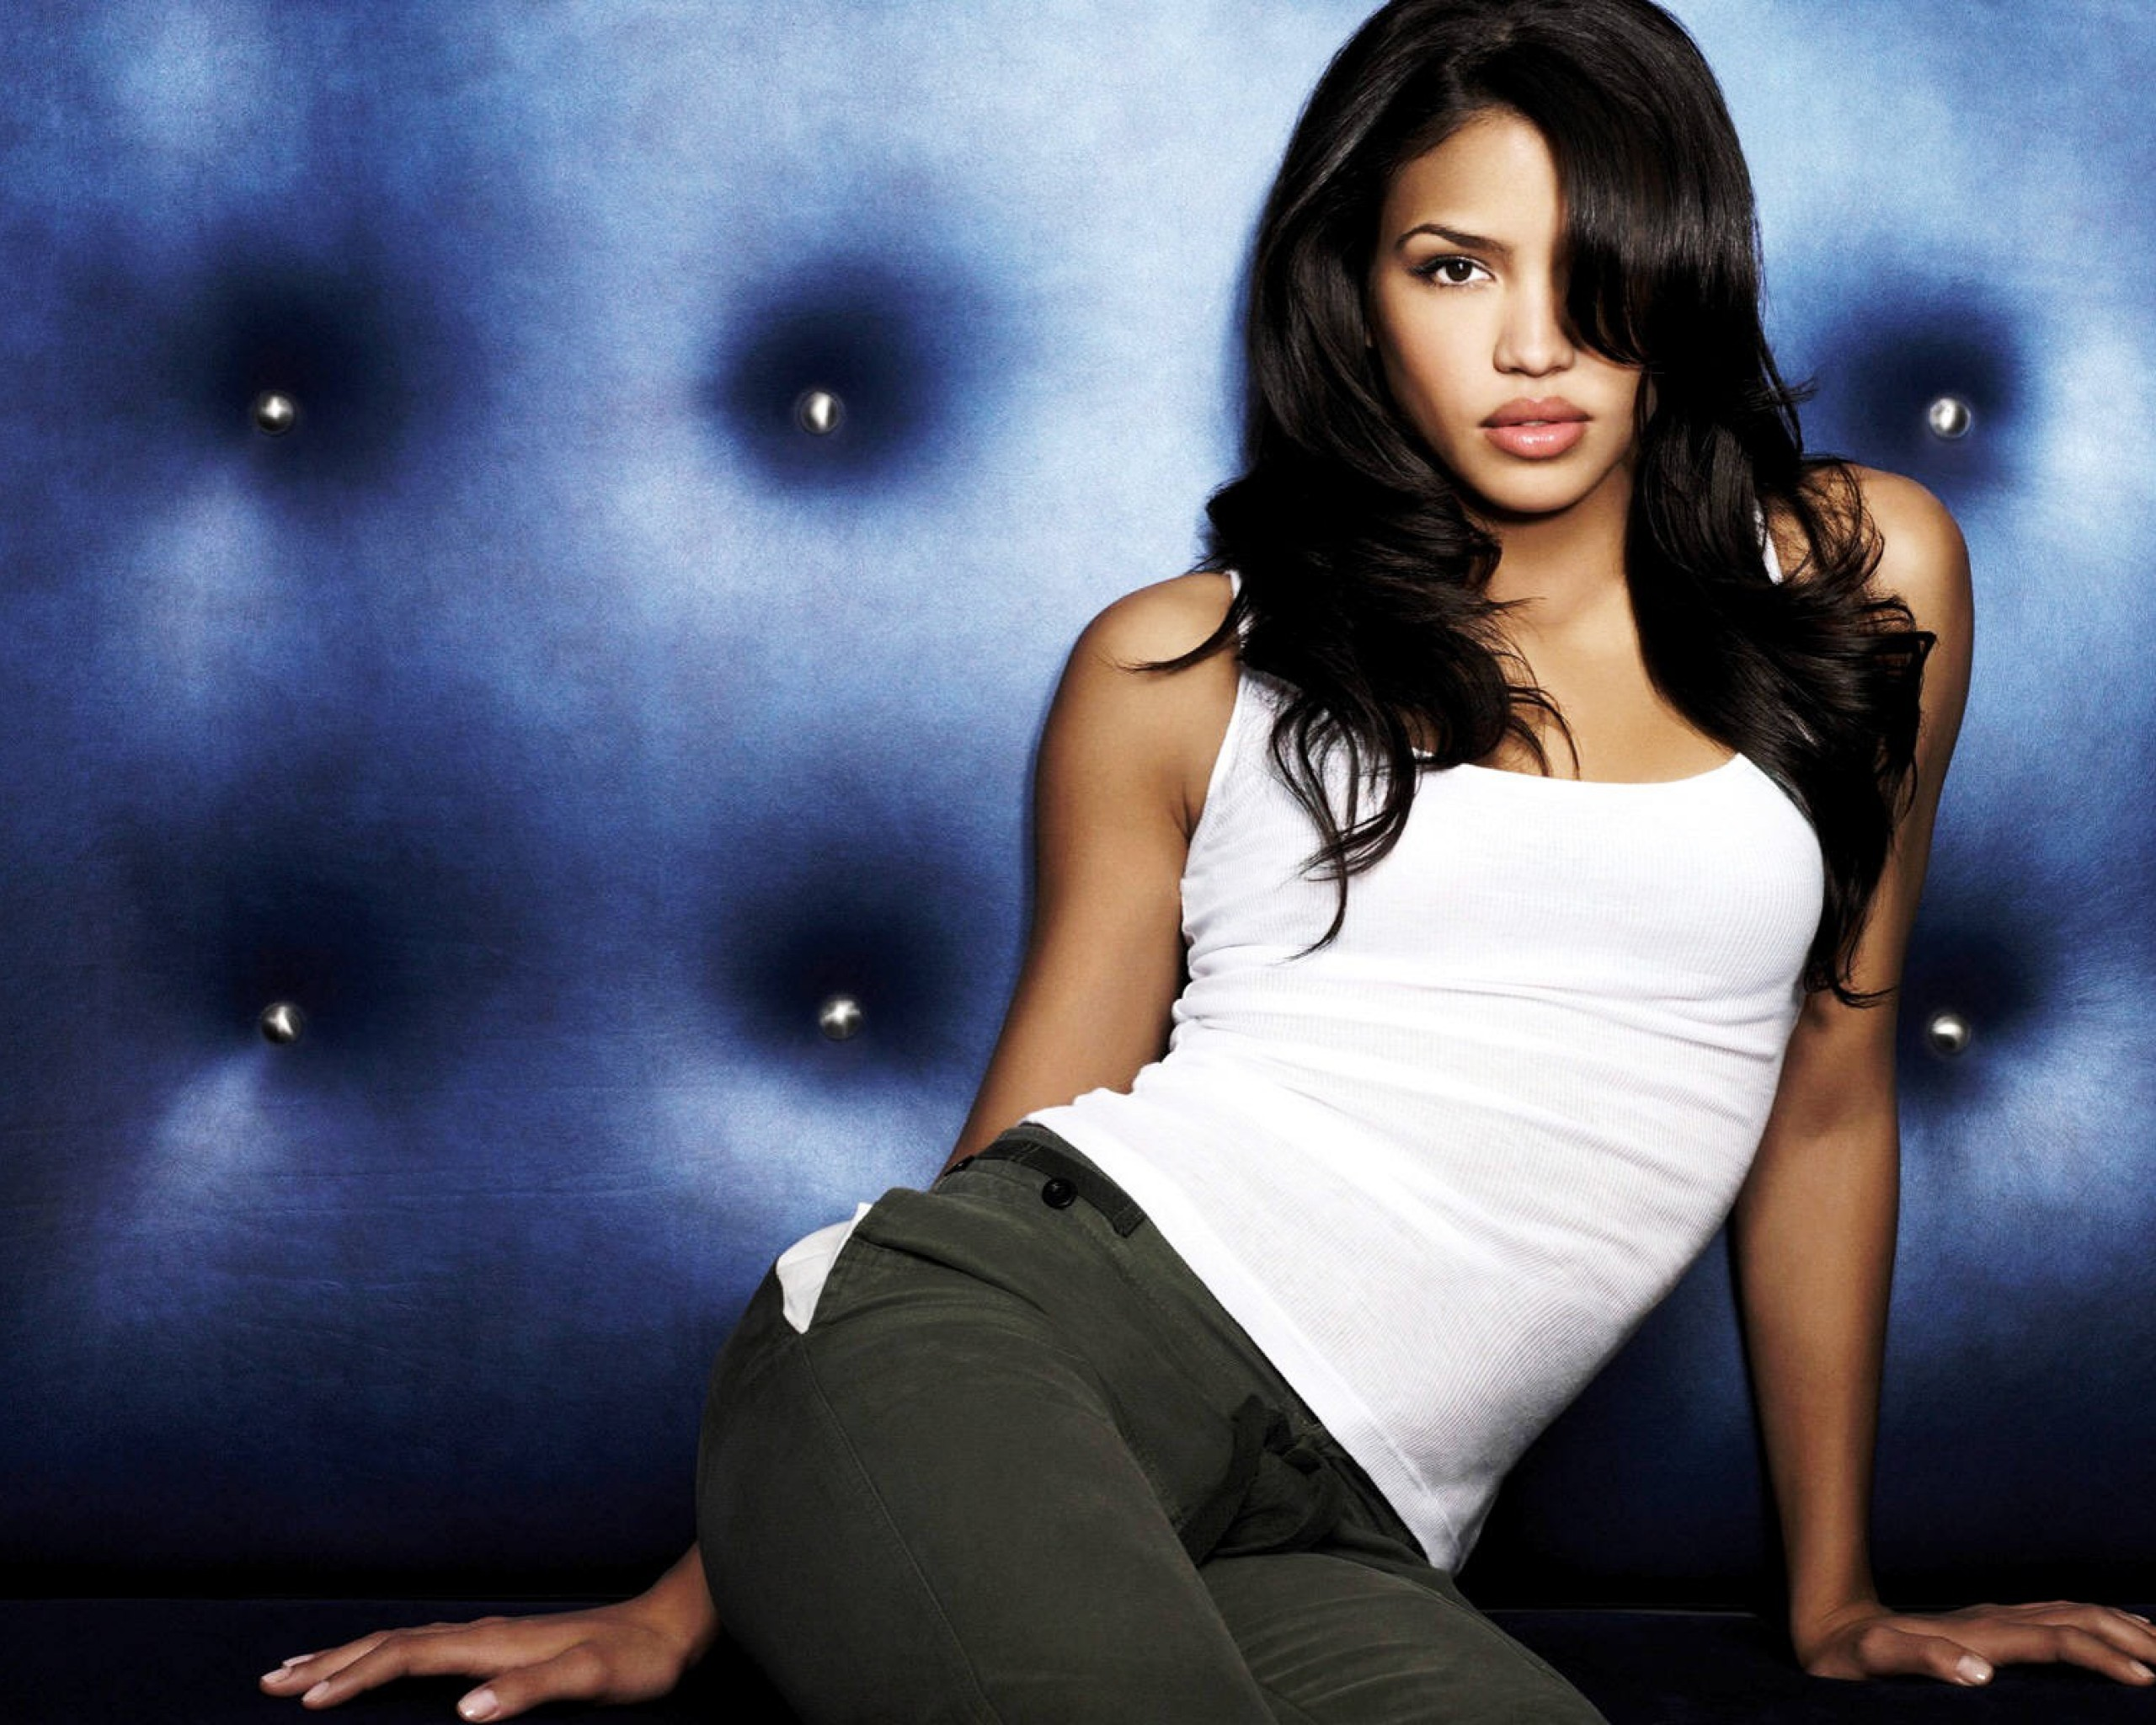 cassie wallpapers photos images - photo #33